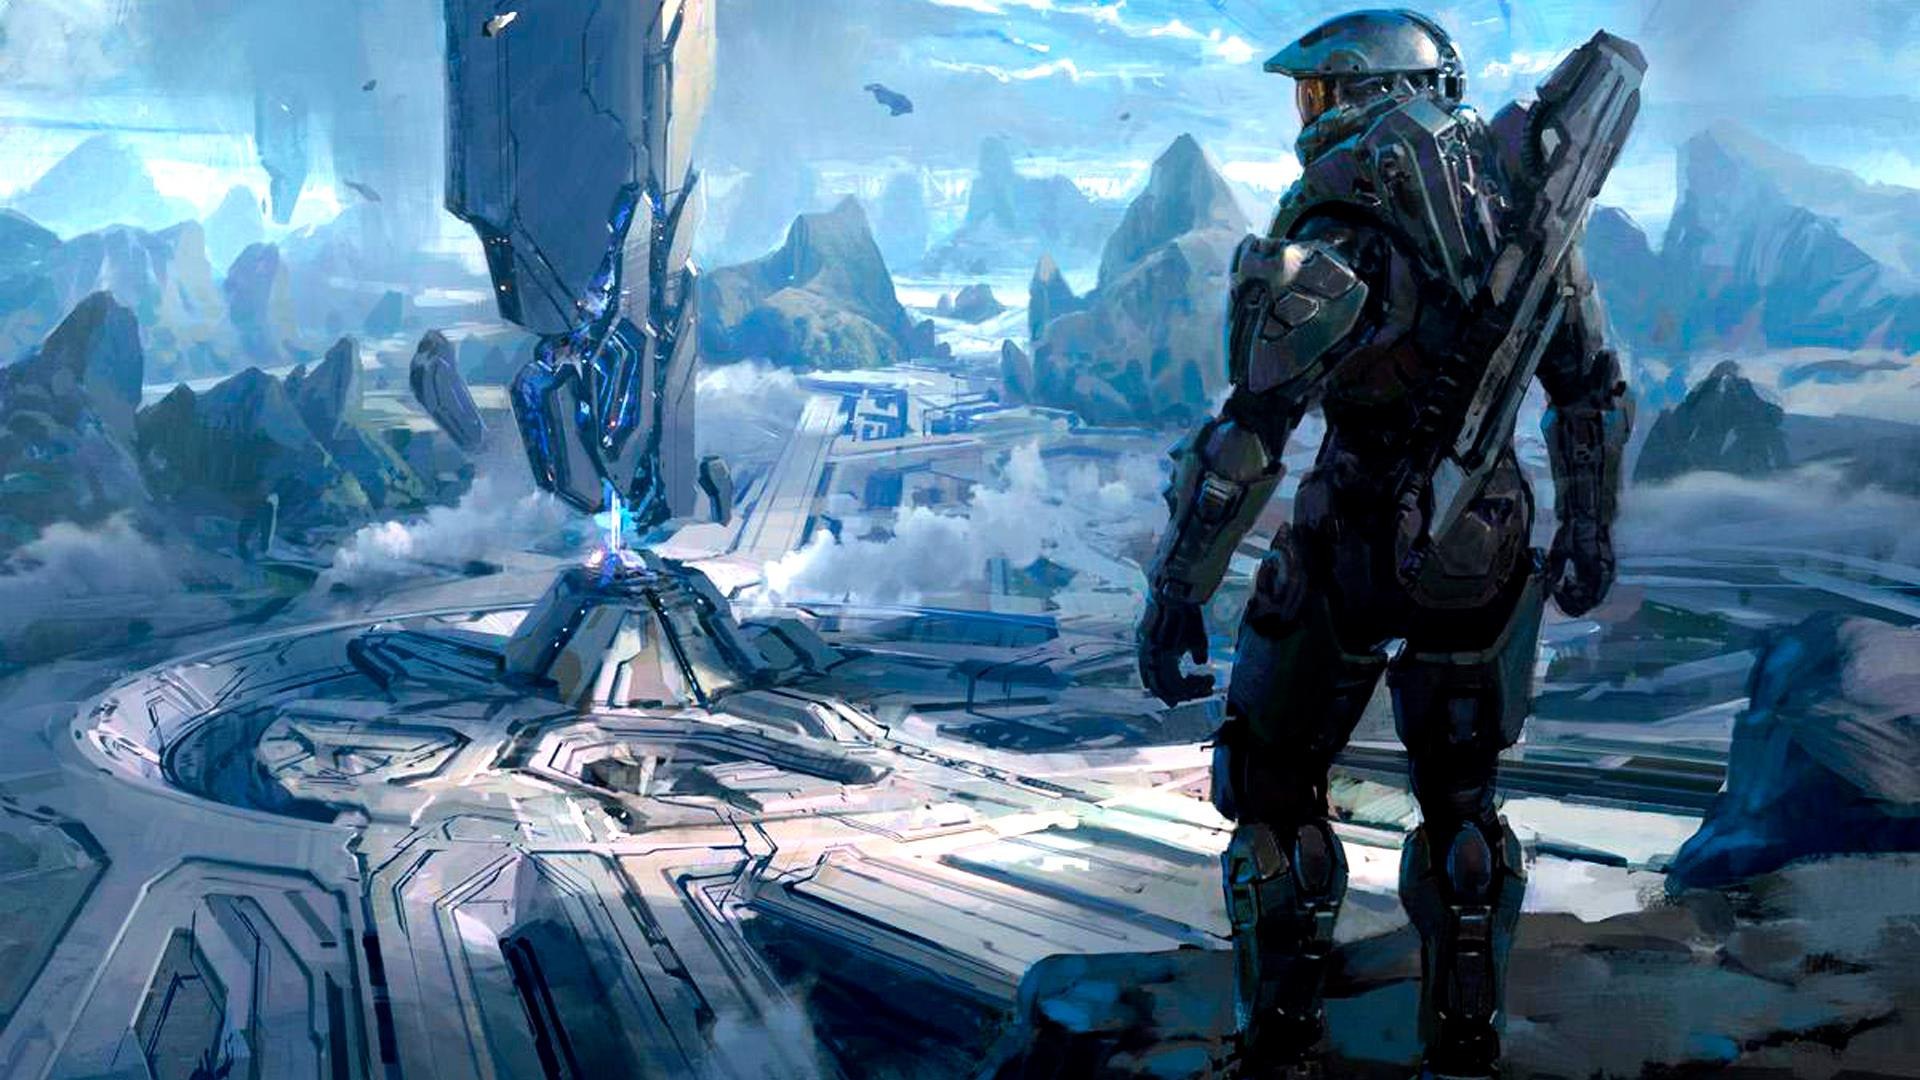 Halo HD desktop wallpaper : High Definition : Fullscreen 1920x1080